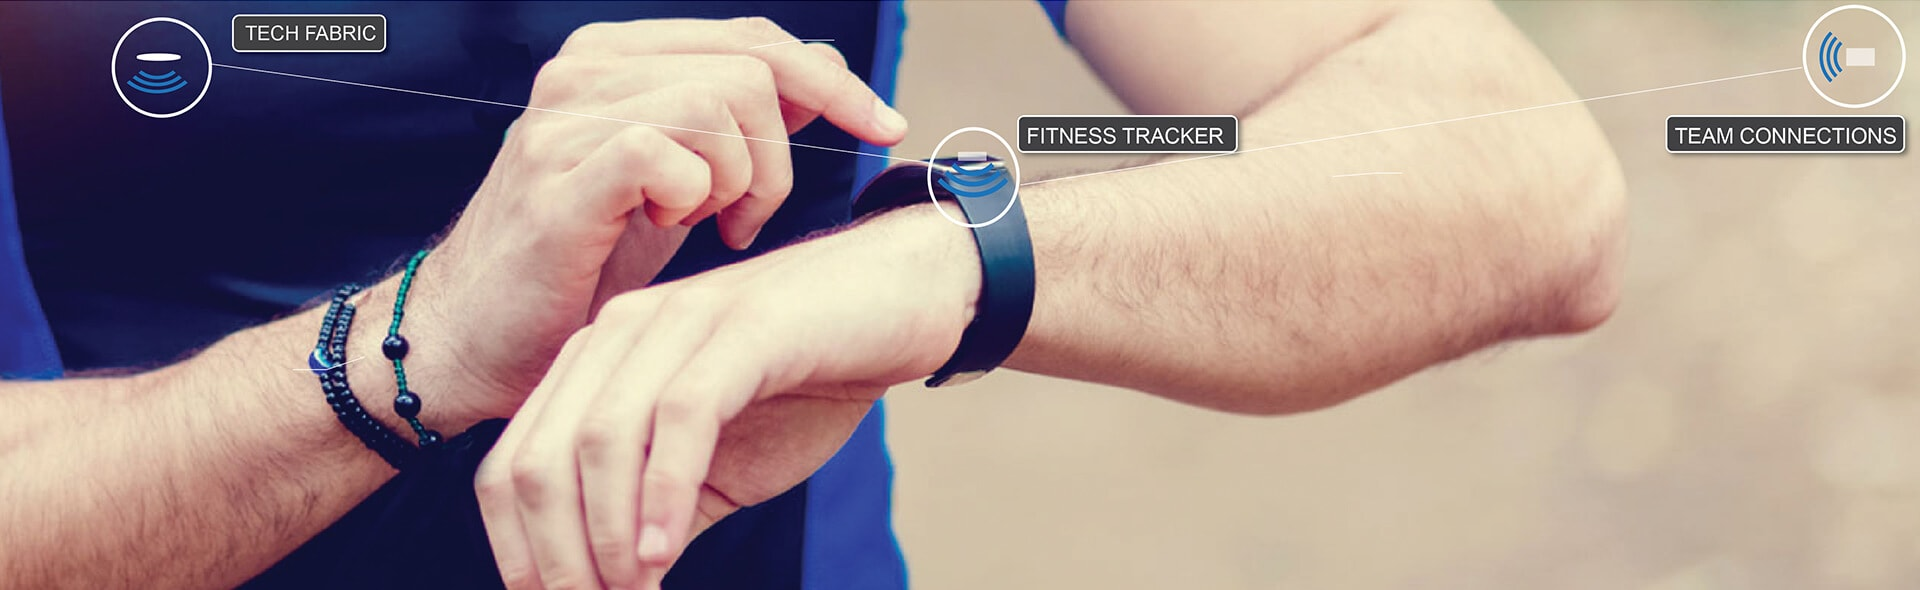 fitness tracker illustrating software frameworks used in a wearable device